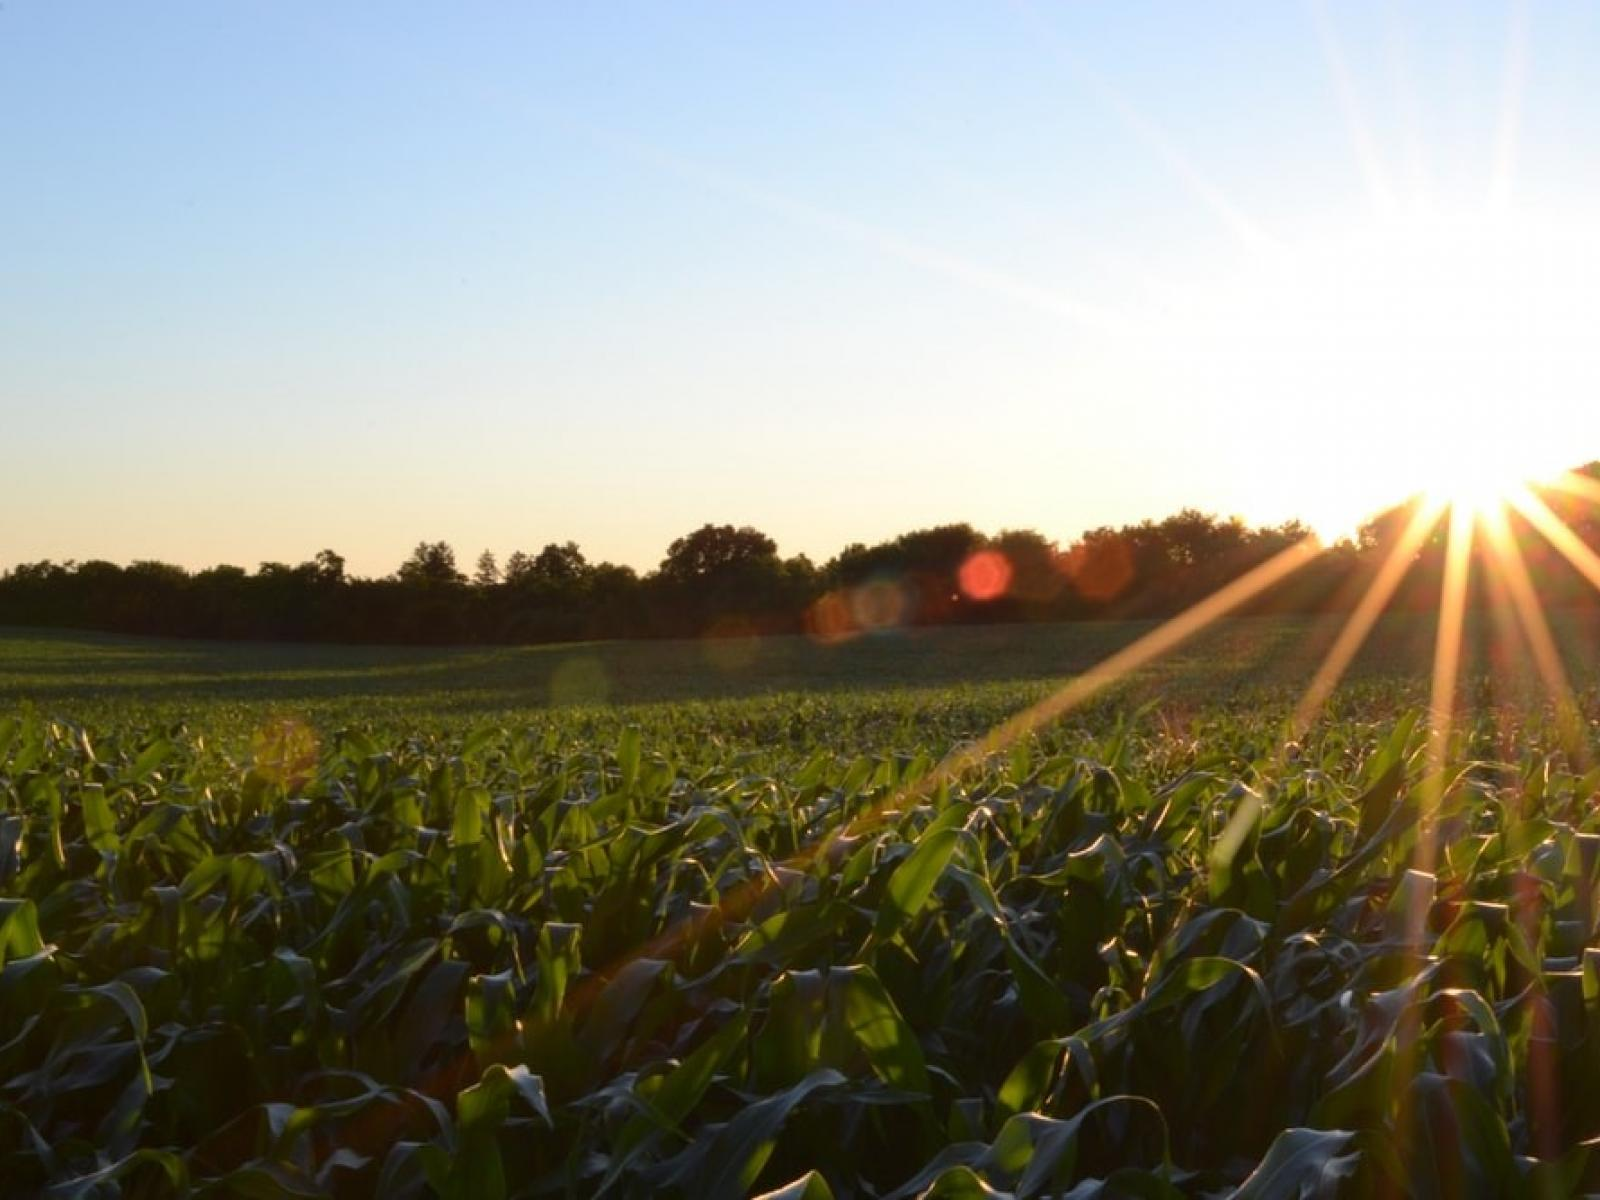 Bright sun over a field of green crops